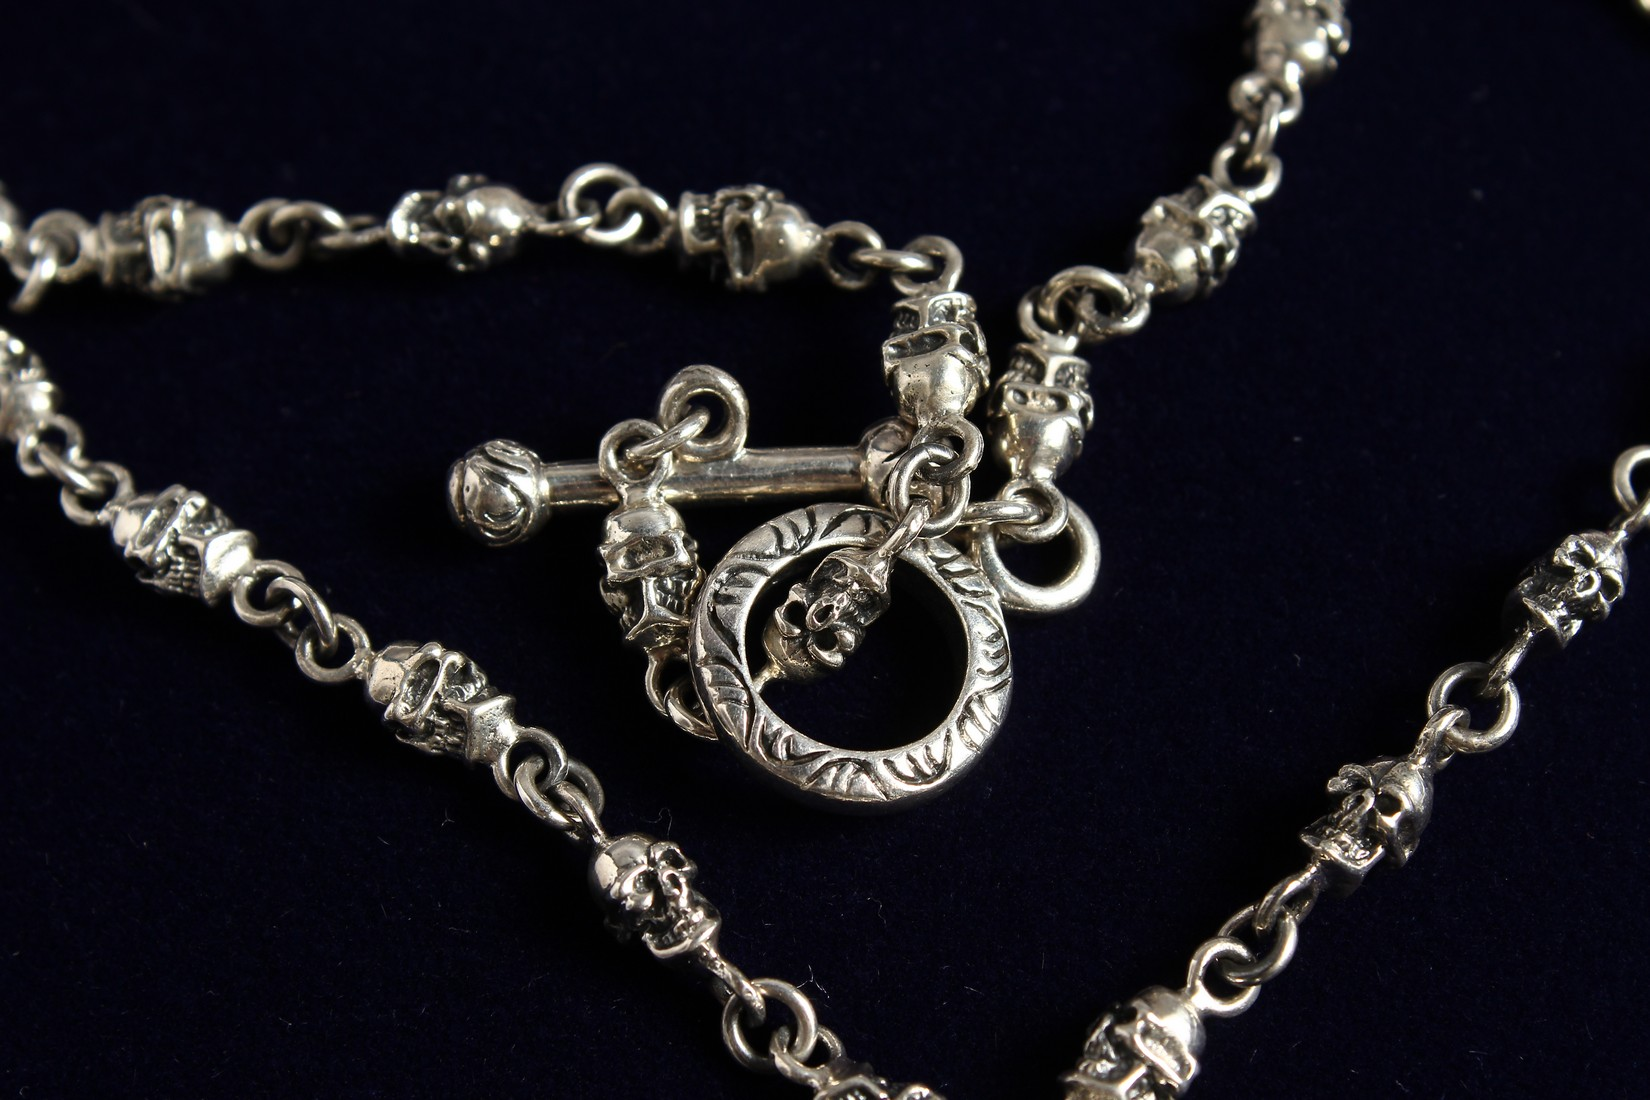 A SILVER SKULL ON A CHAIN. - Image 3 of 3